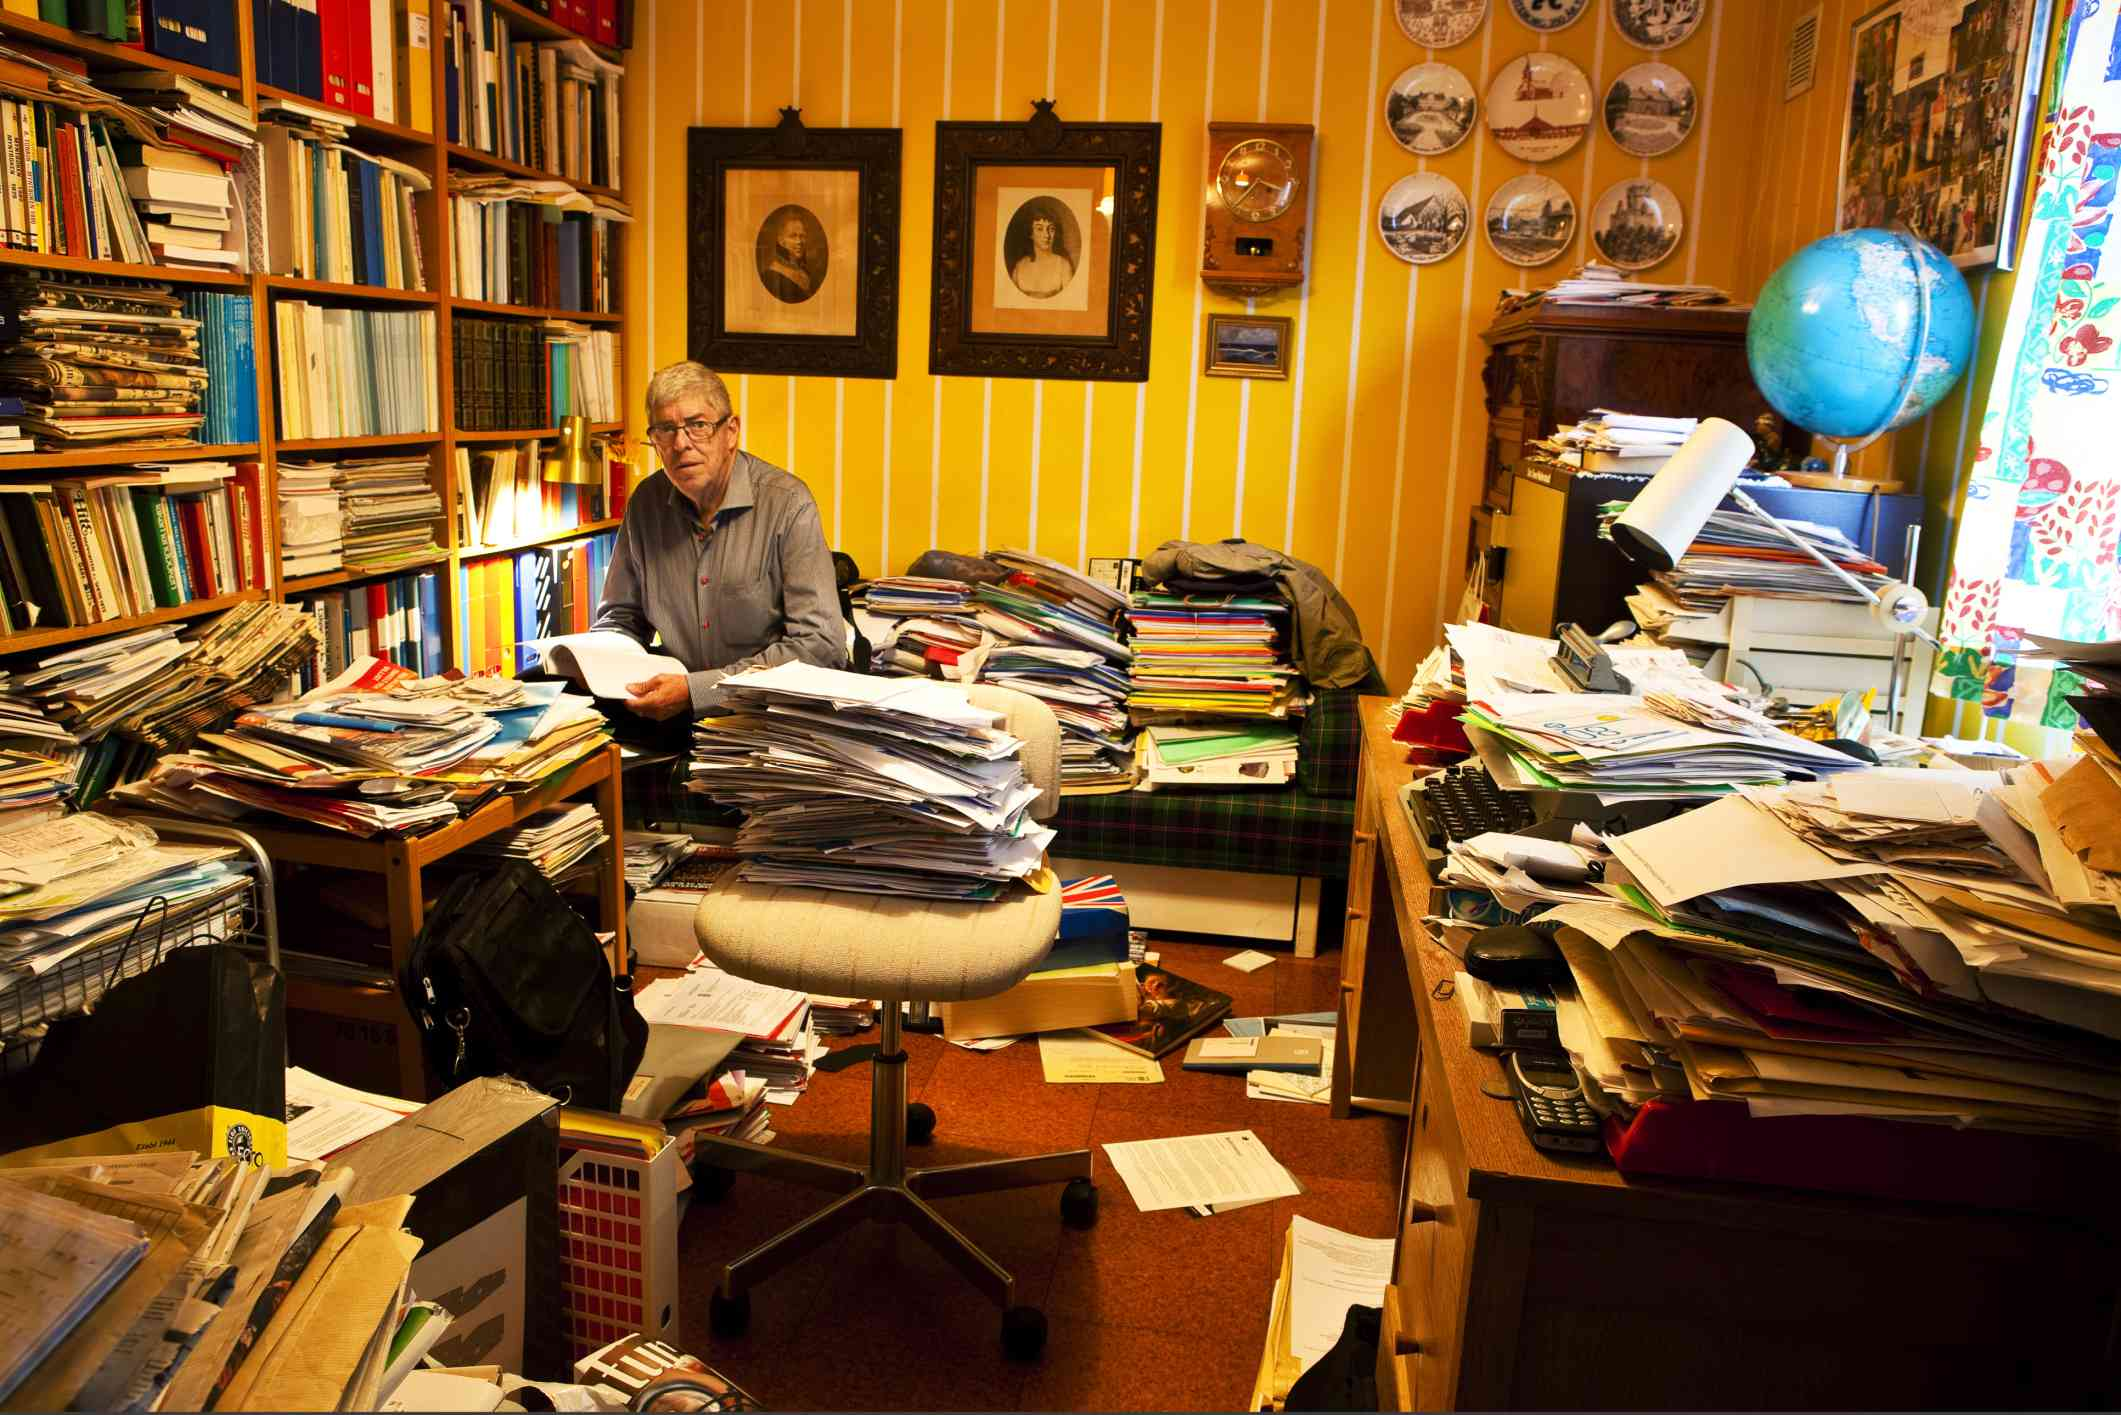 Man sitting in a room filled with clutter that he's hoarded